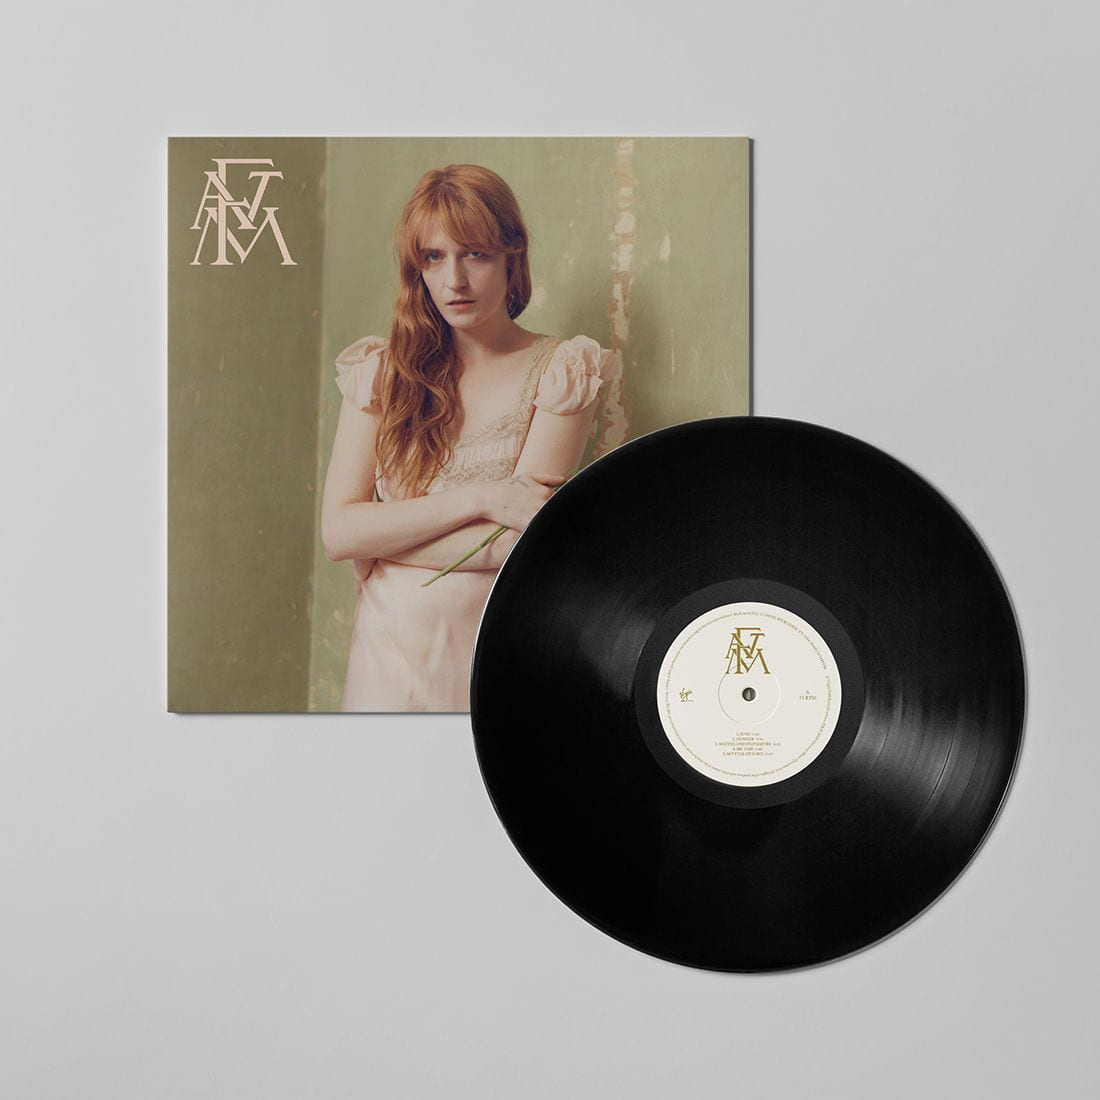 Florence + The Machine - High As Hope [LP] (Vinyl) - Urban Vinyl | Records, Headphones, and more.